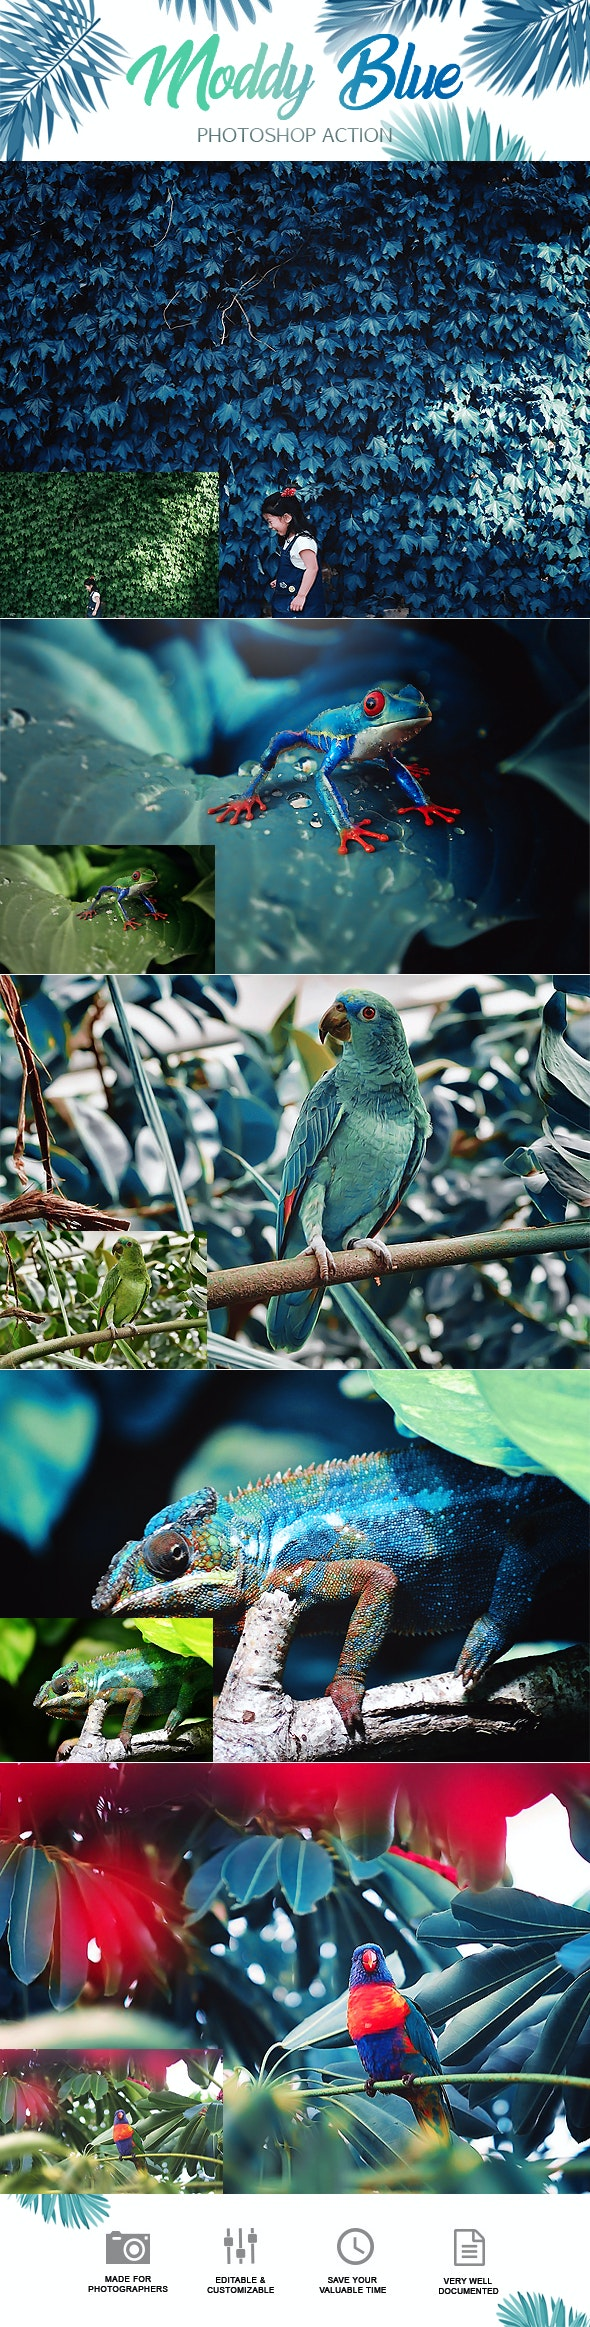 Moddy Blue Photoshop Action - Photo Effects Actions